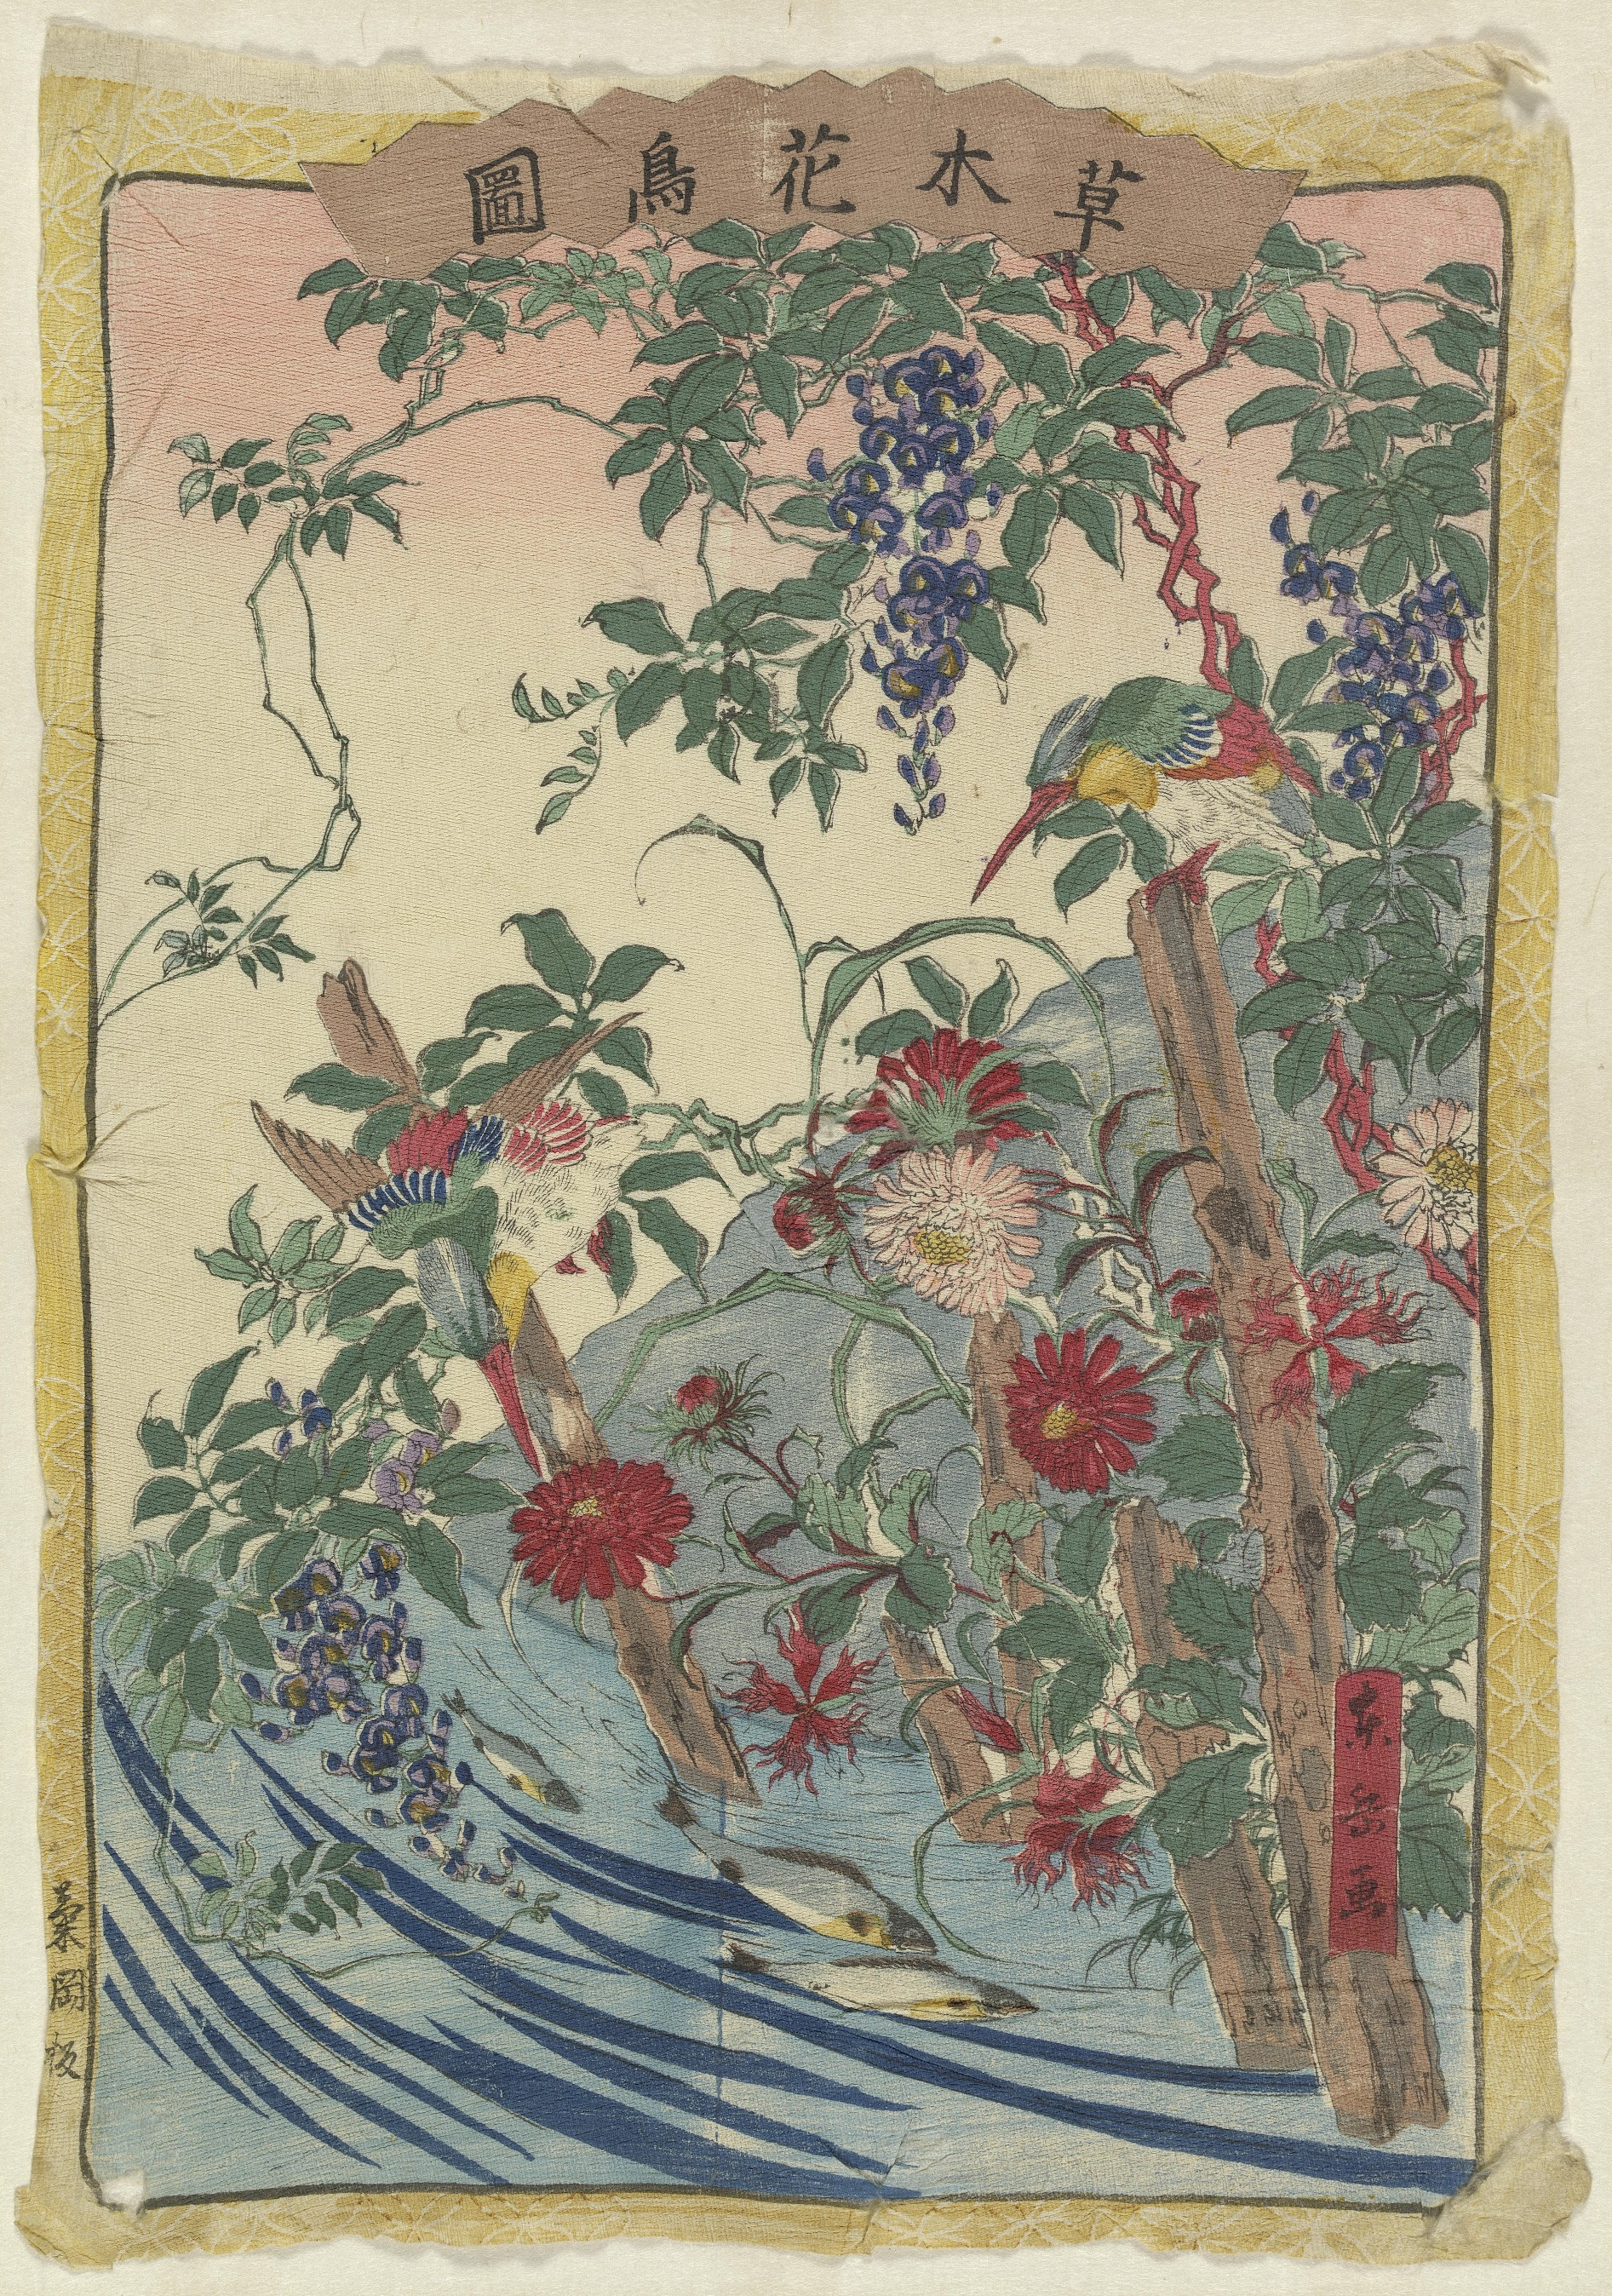 Kingfishers, from the series Illustrations of Plants, Trees, Flowers and Birds Tokyo, c. 1875 Togaku